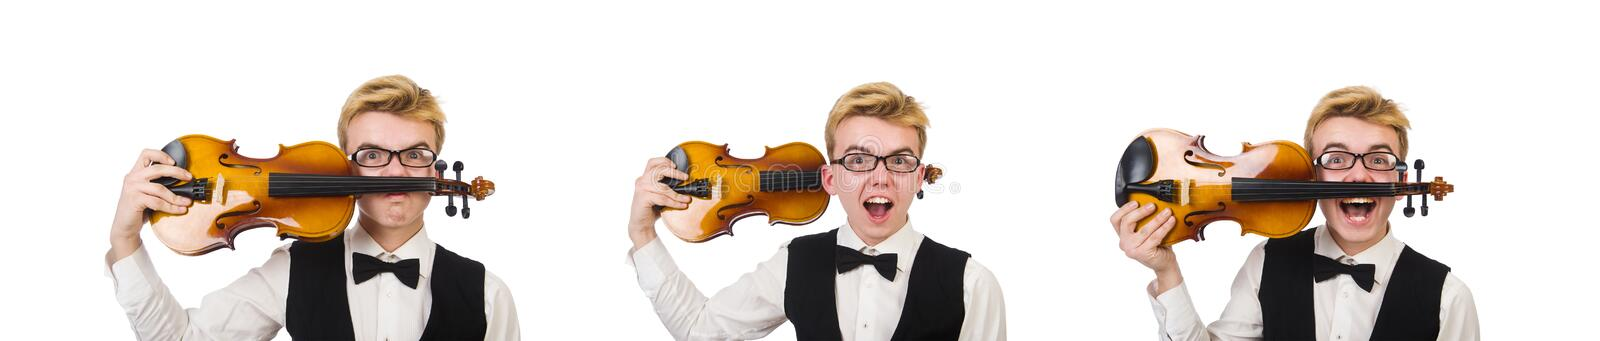 Funny man with violin on white royalty free stock photography